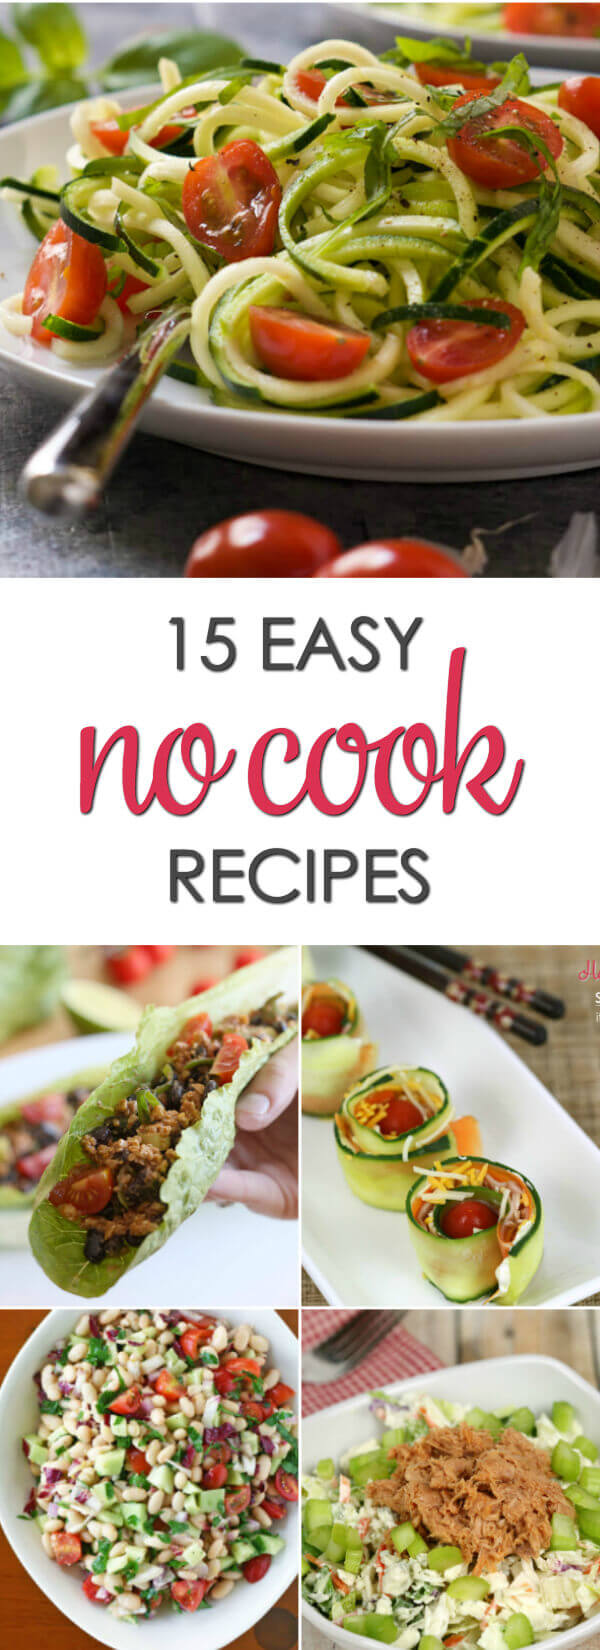 No cook dinner recipes that are quick and easy to make